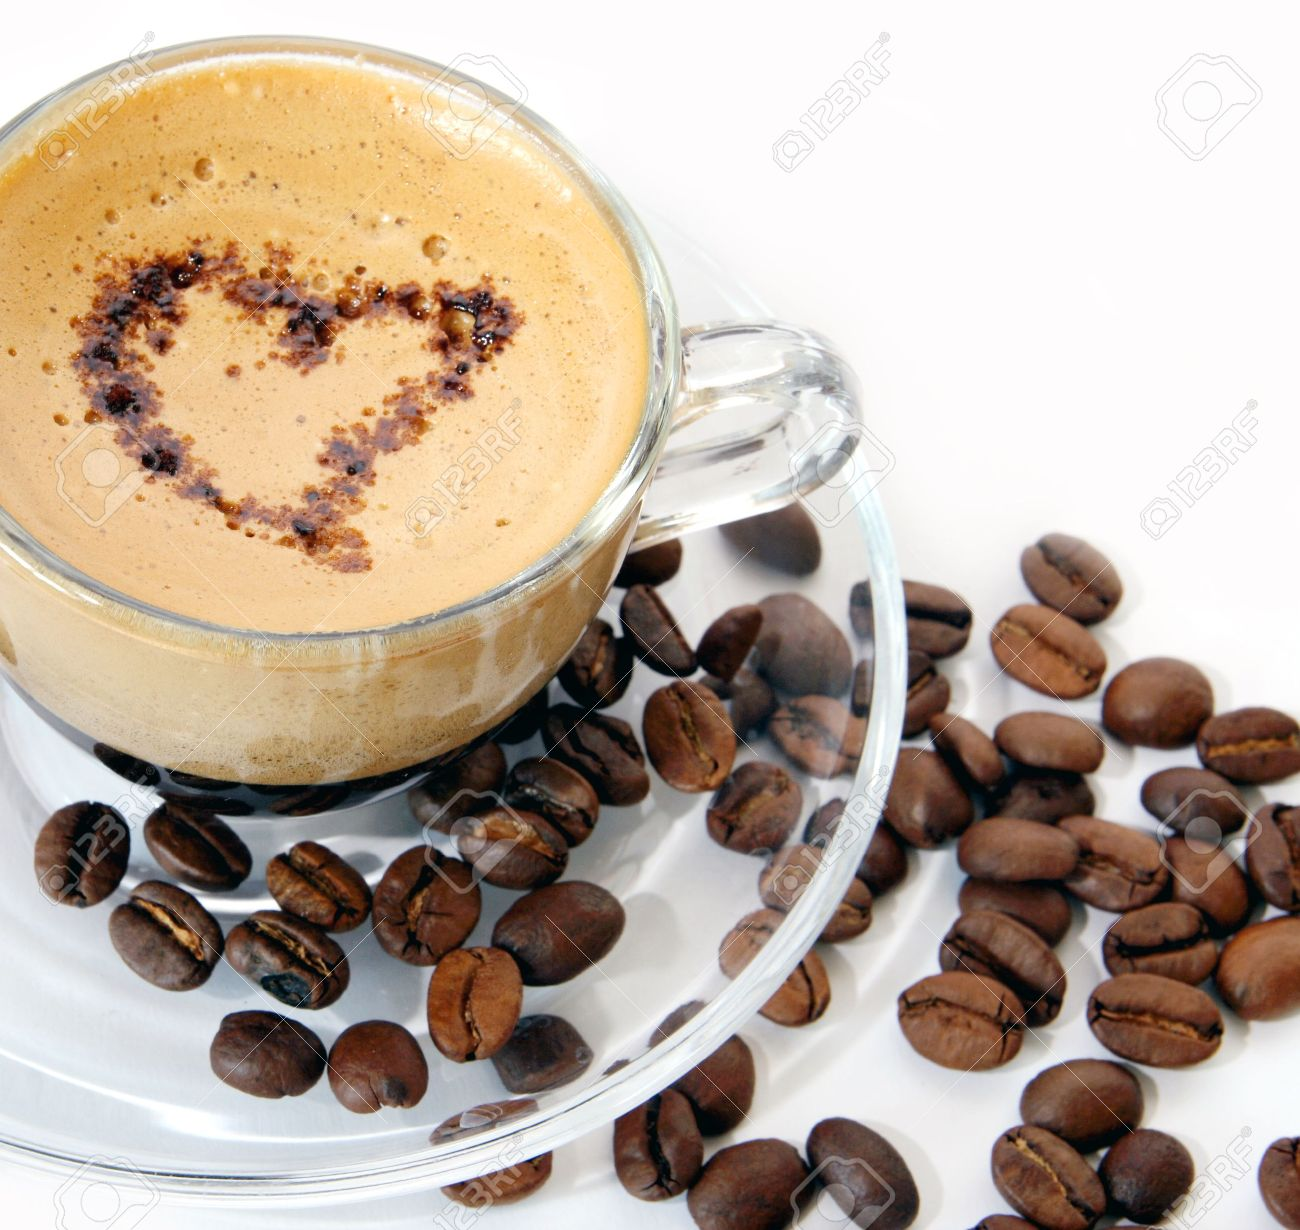 Coffee cup transparent - Coffee In A Transparent Mug On A White Background Stock Photo 5048032